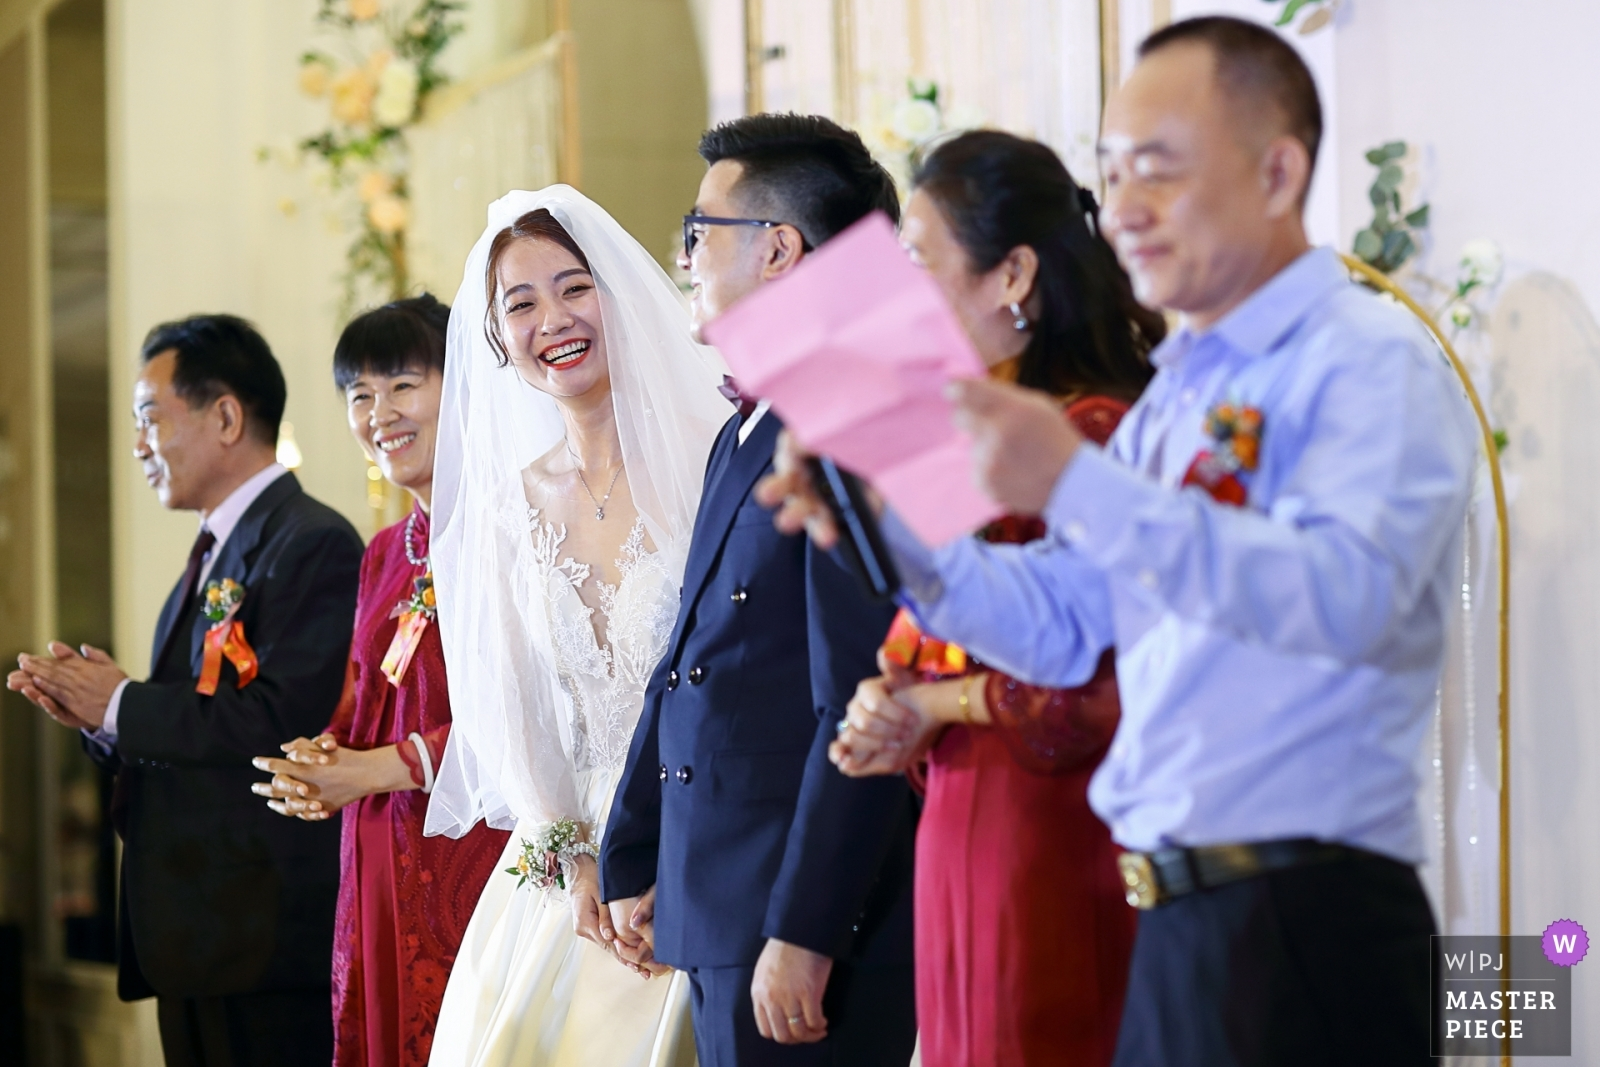 ceremony of the wedding - Guangdong, China Wedding Photography -  | ceremony location